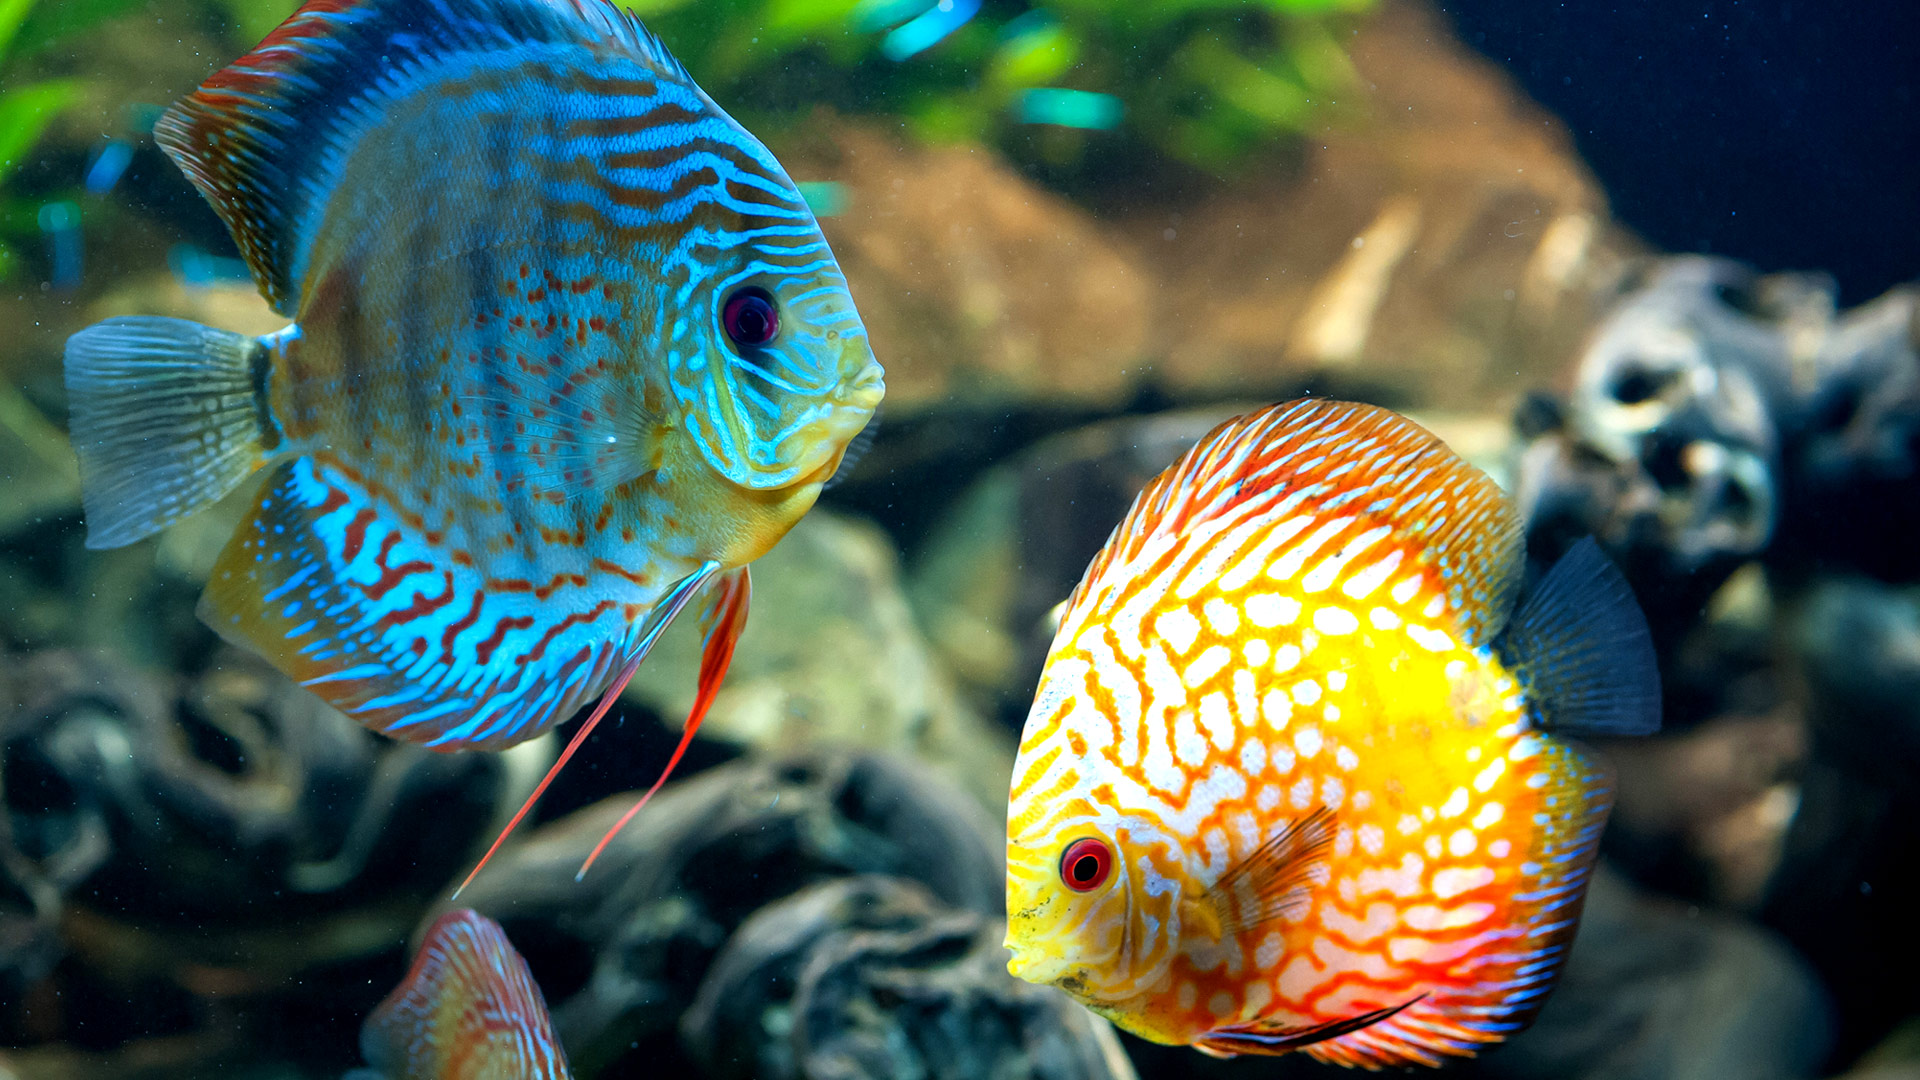 Coral-Reef-Fish-wallpapers-hd-1080p-1920x1080-desktop-02